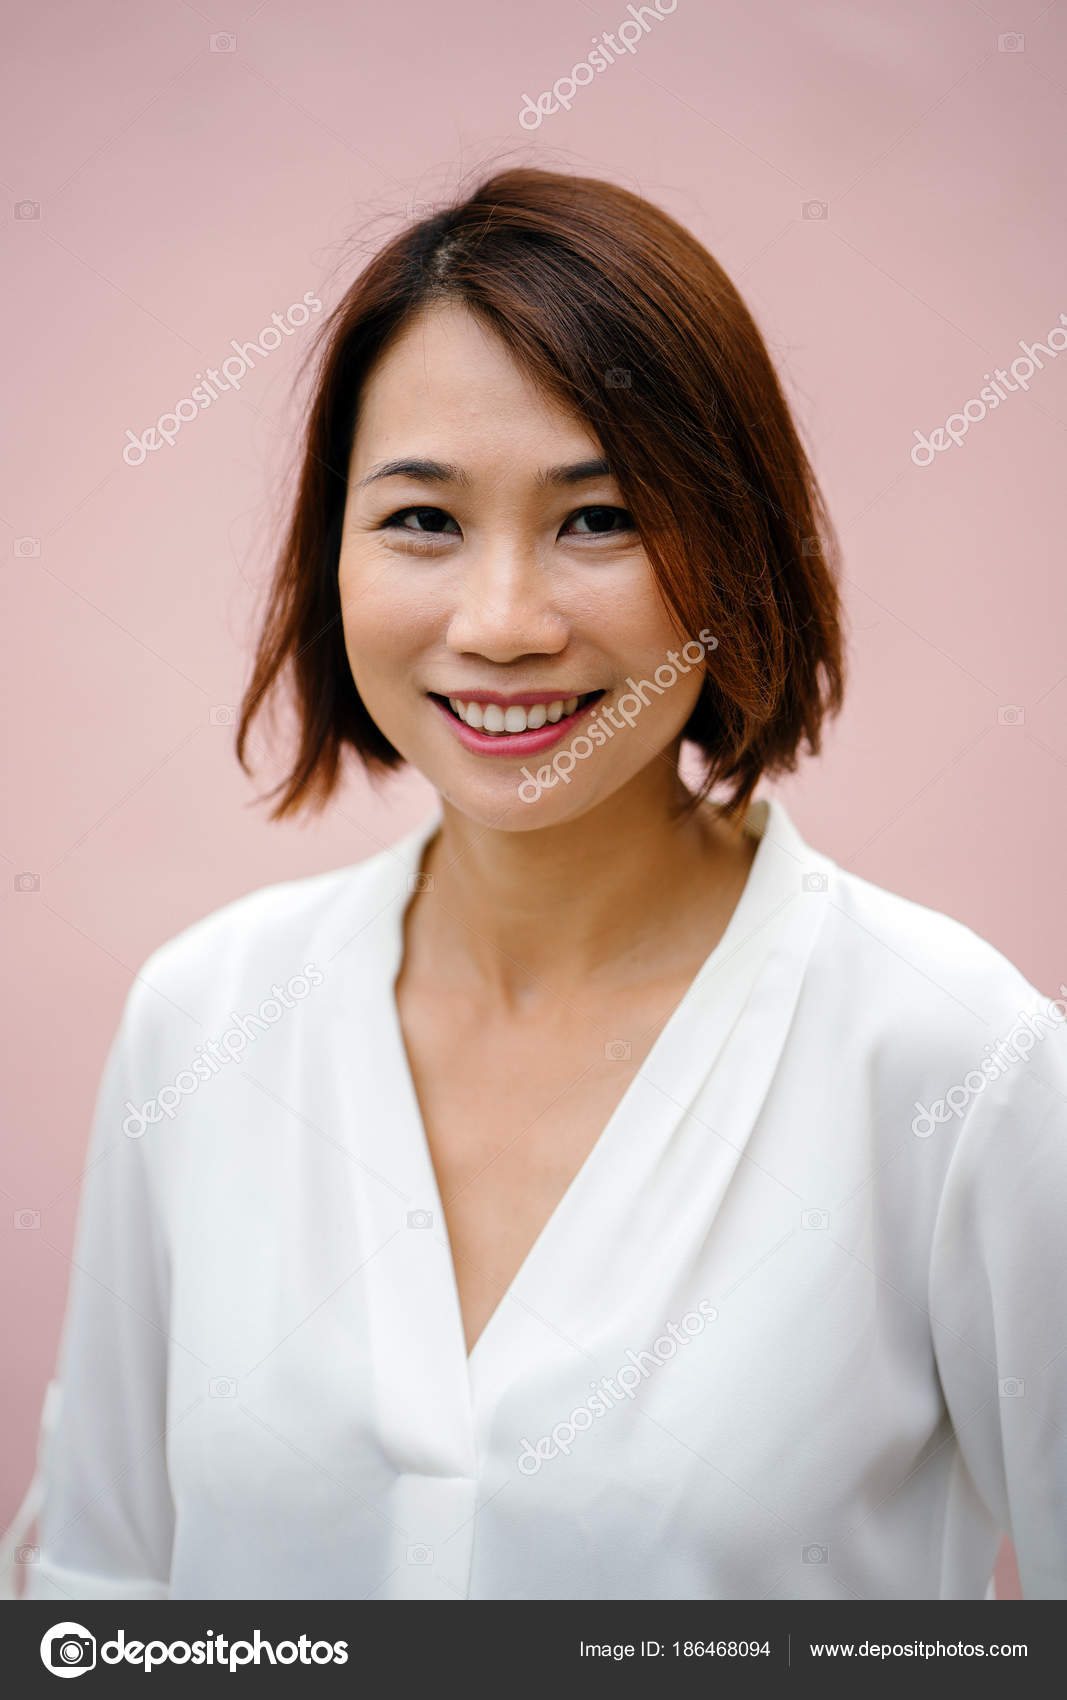 Asian portrait studio